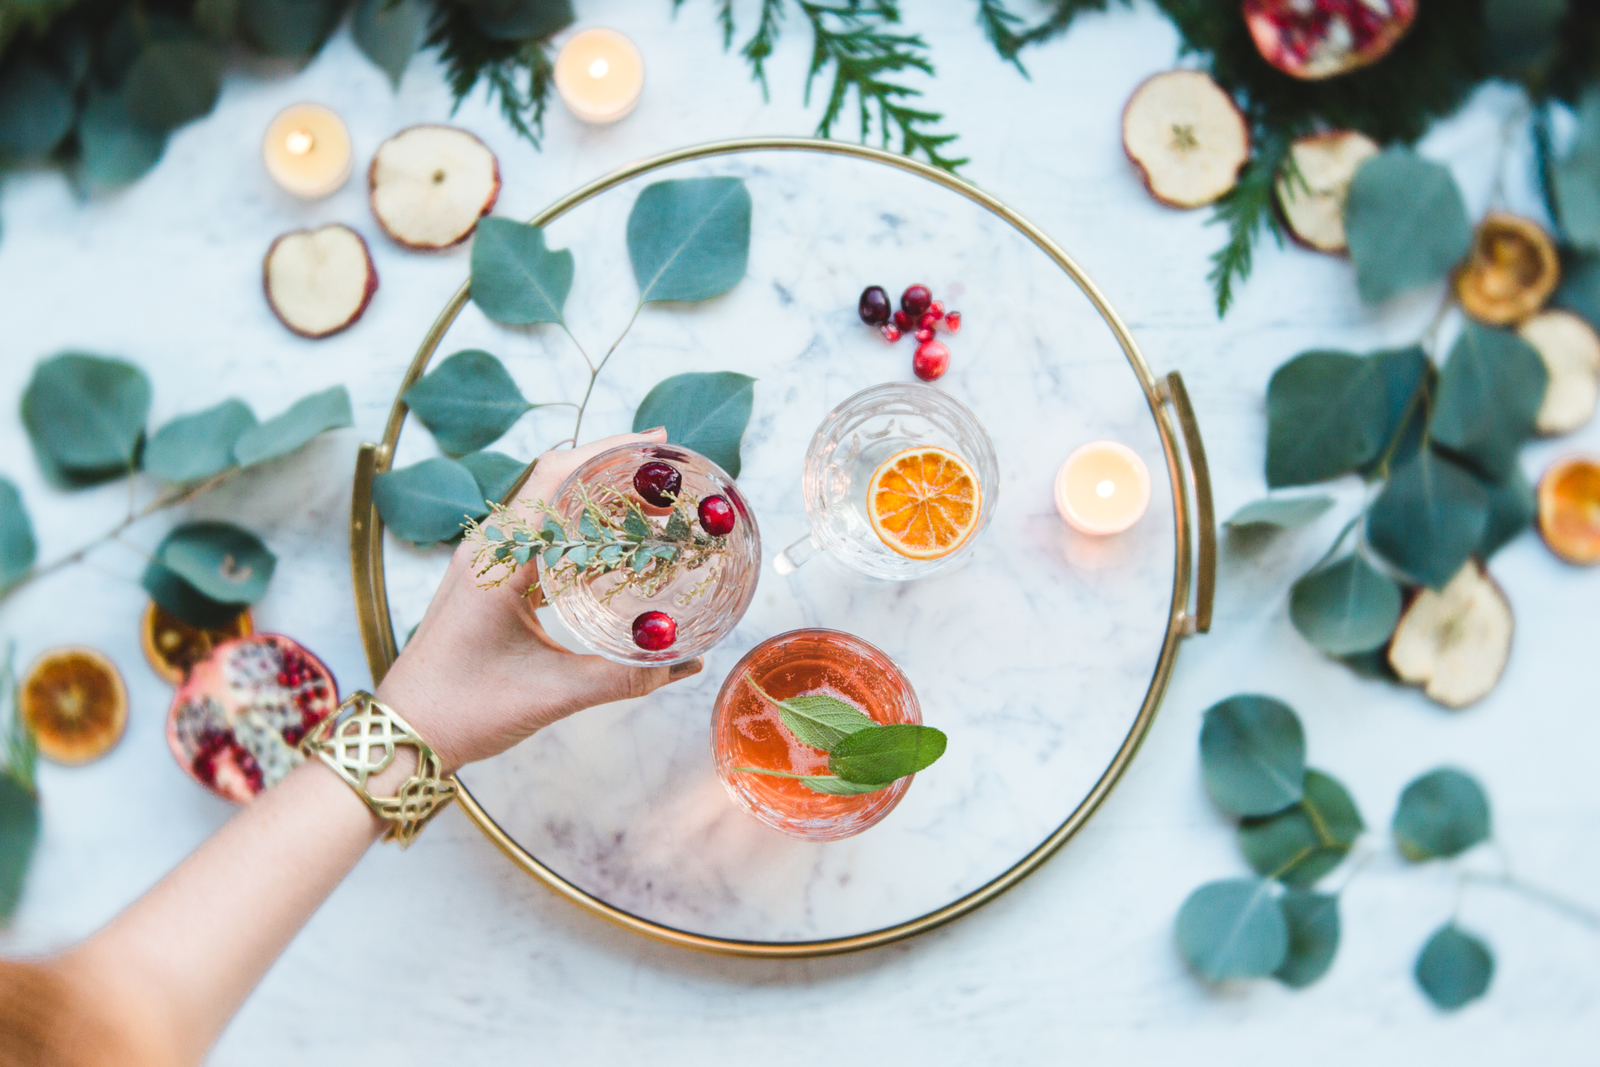 Setting Healthy Boundaries During the Holidays